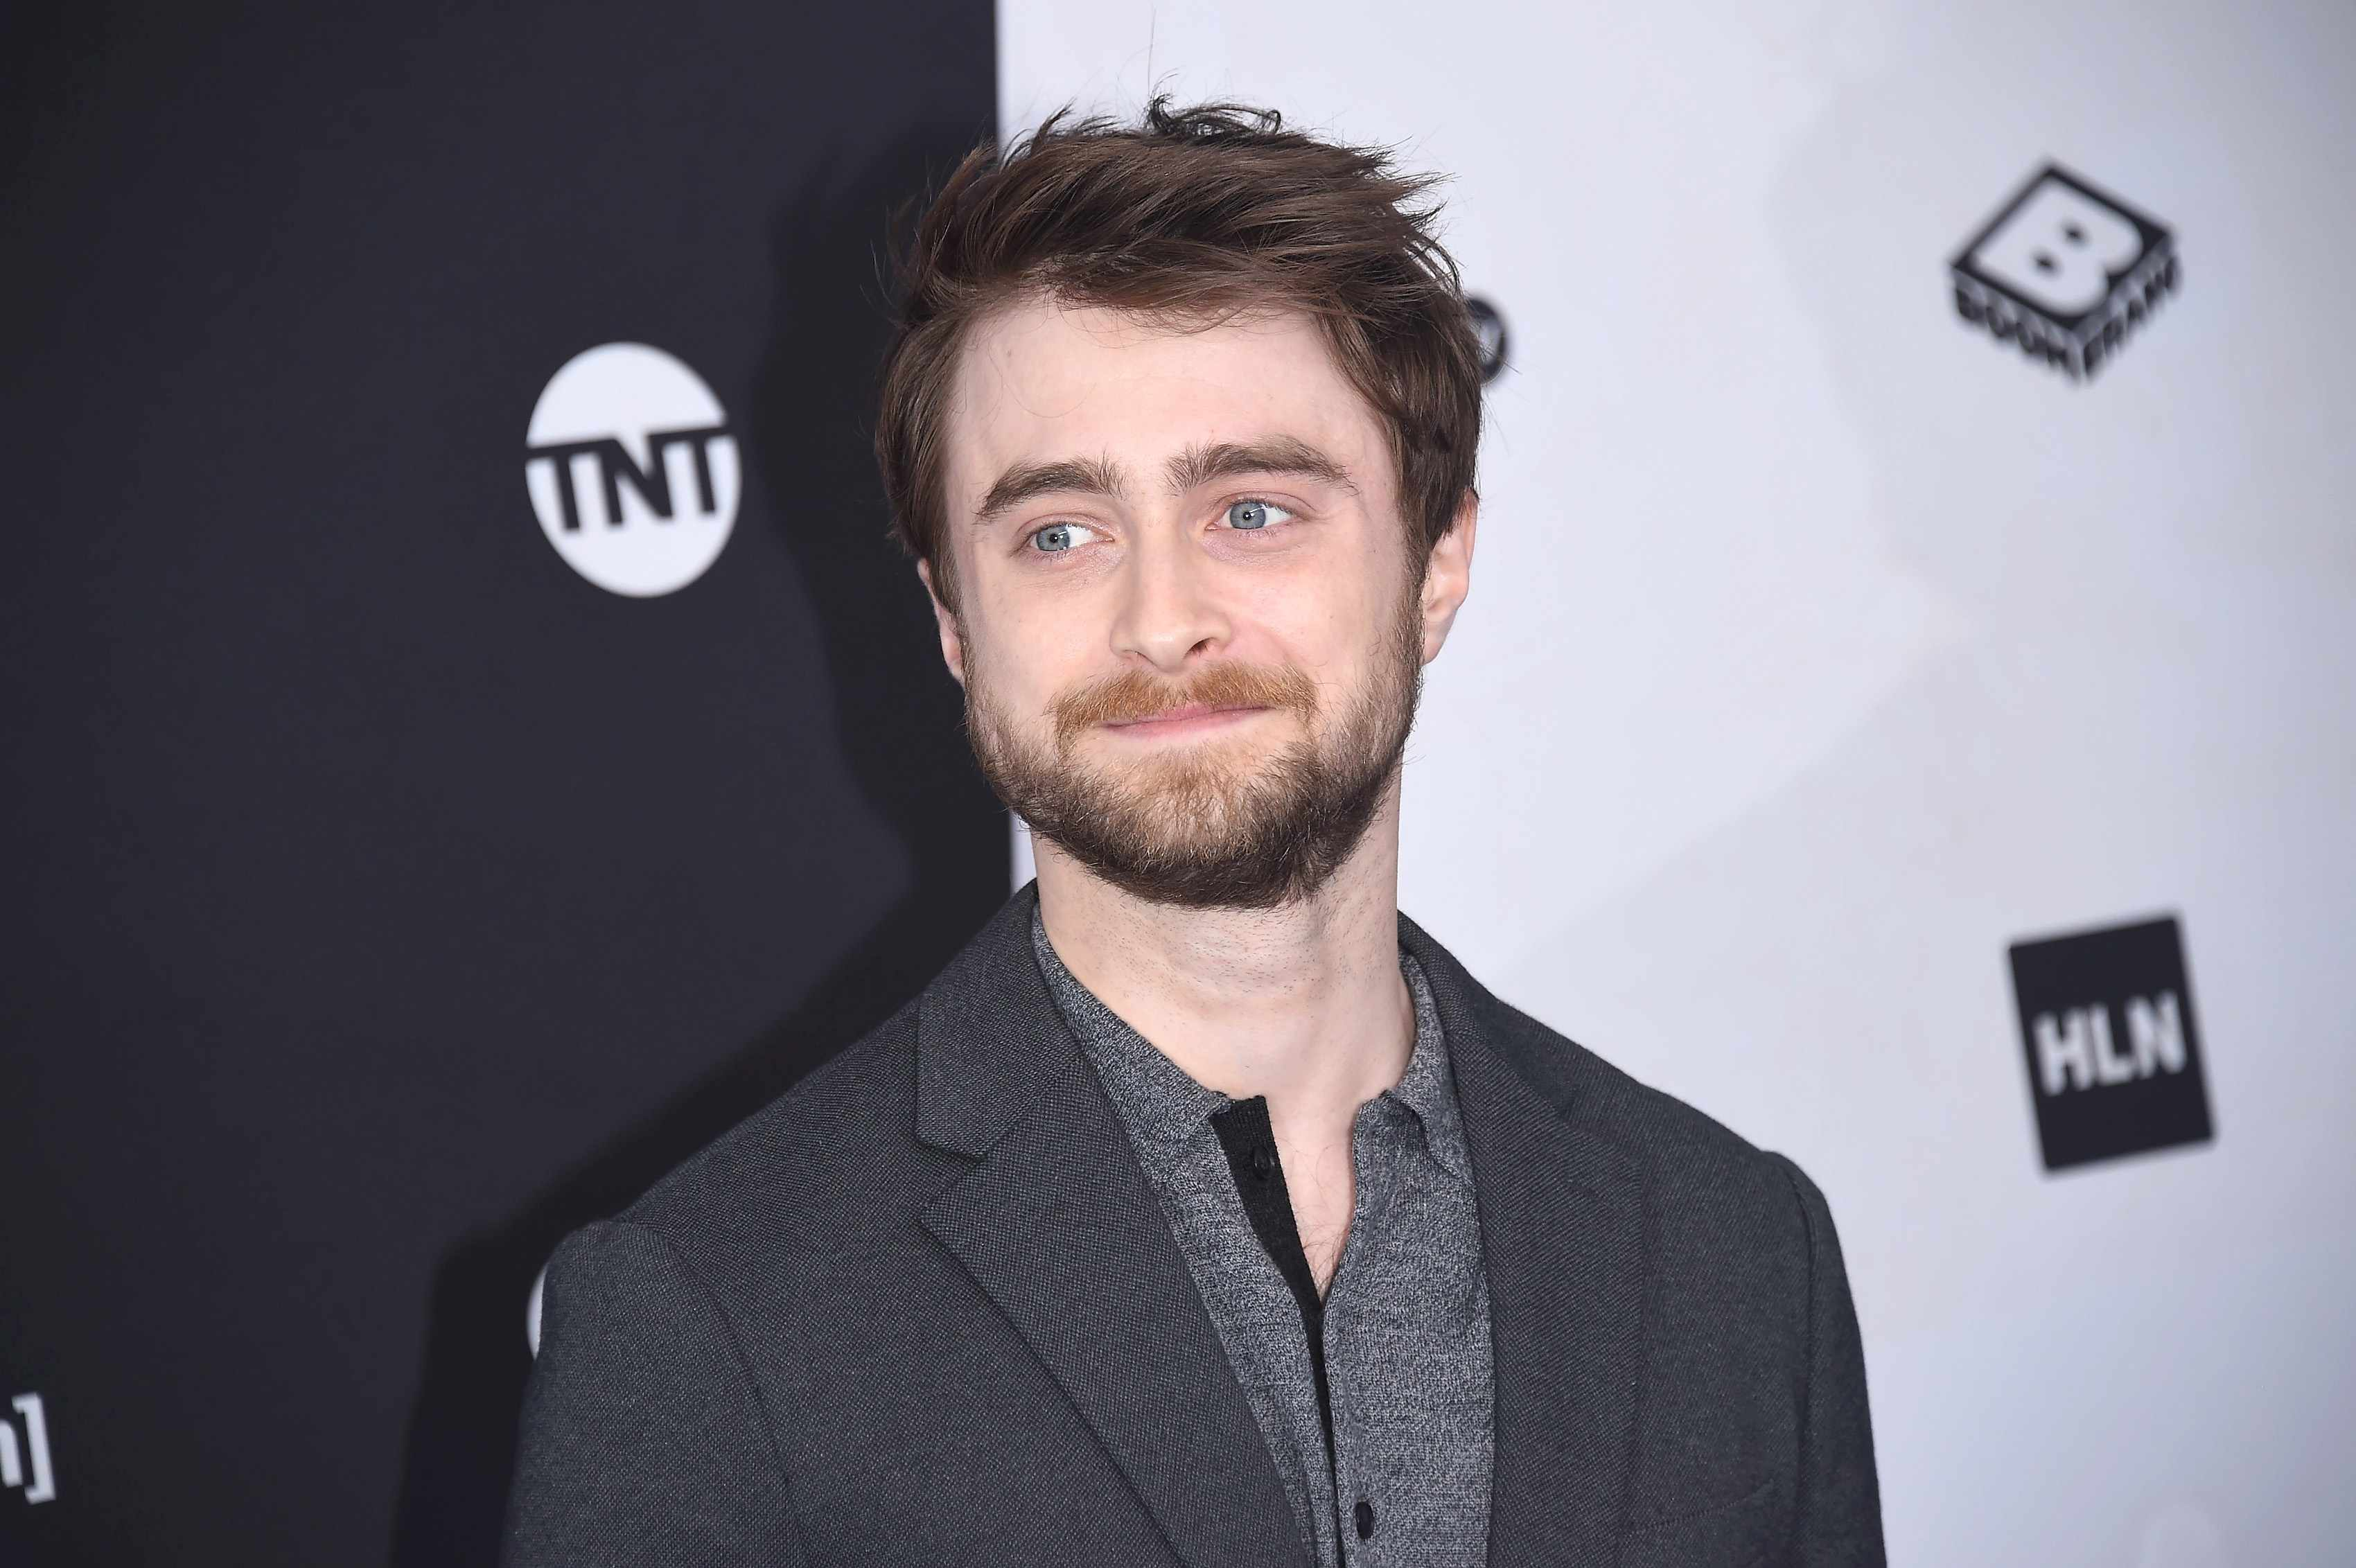 NEW YORK, NY - MAY 16:  Daniel Radcliffe attends the 2018 Turner Upfront at One Penn Plaza on May 16, 2018 in New York City.  (Photo by Gary Gershoff/WireImage)